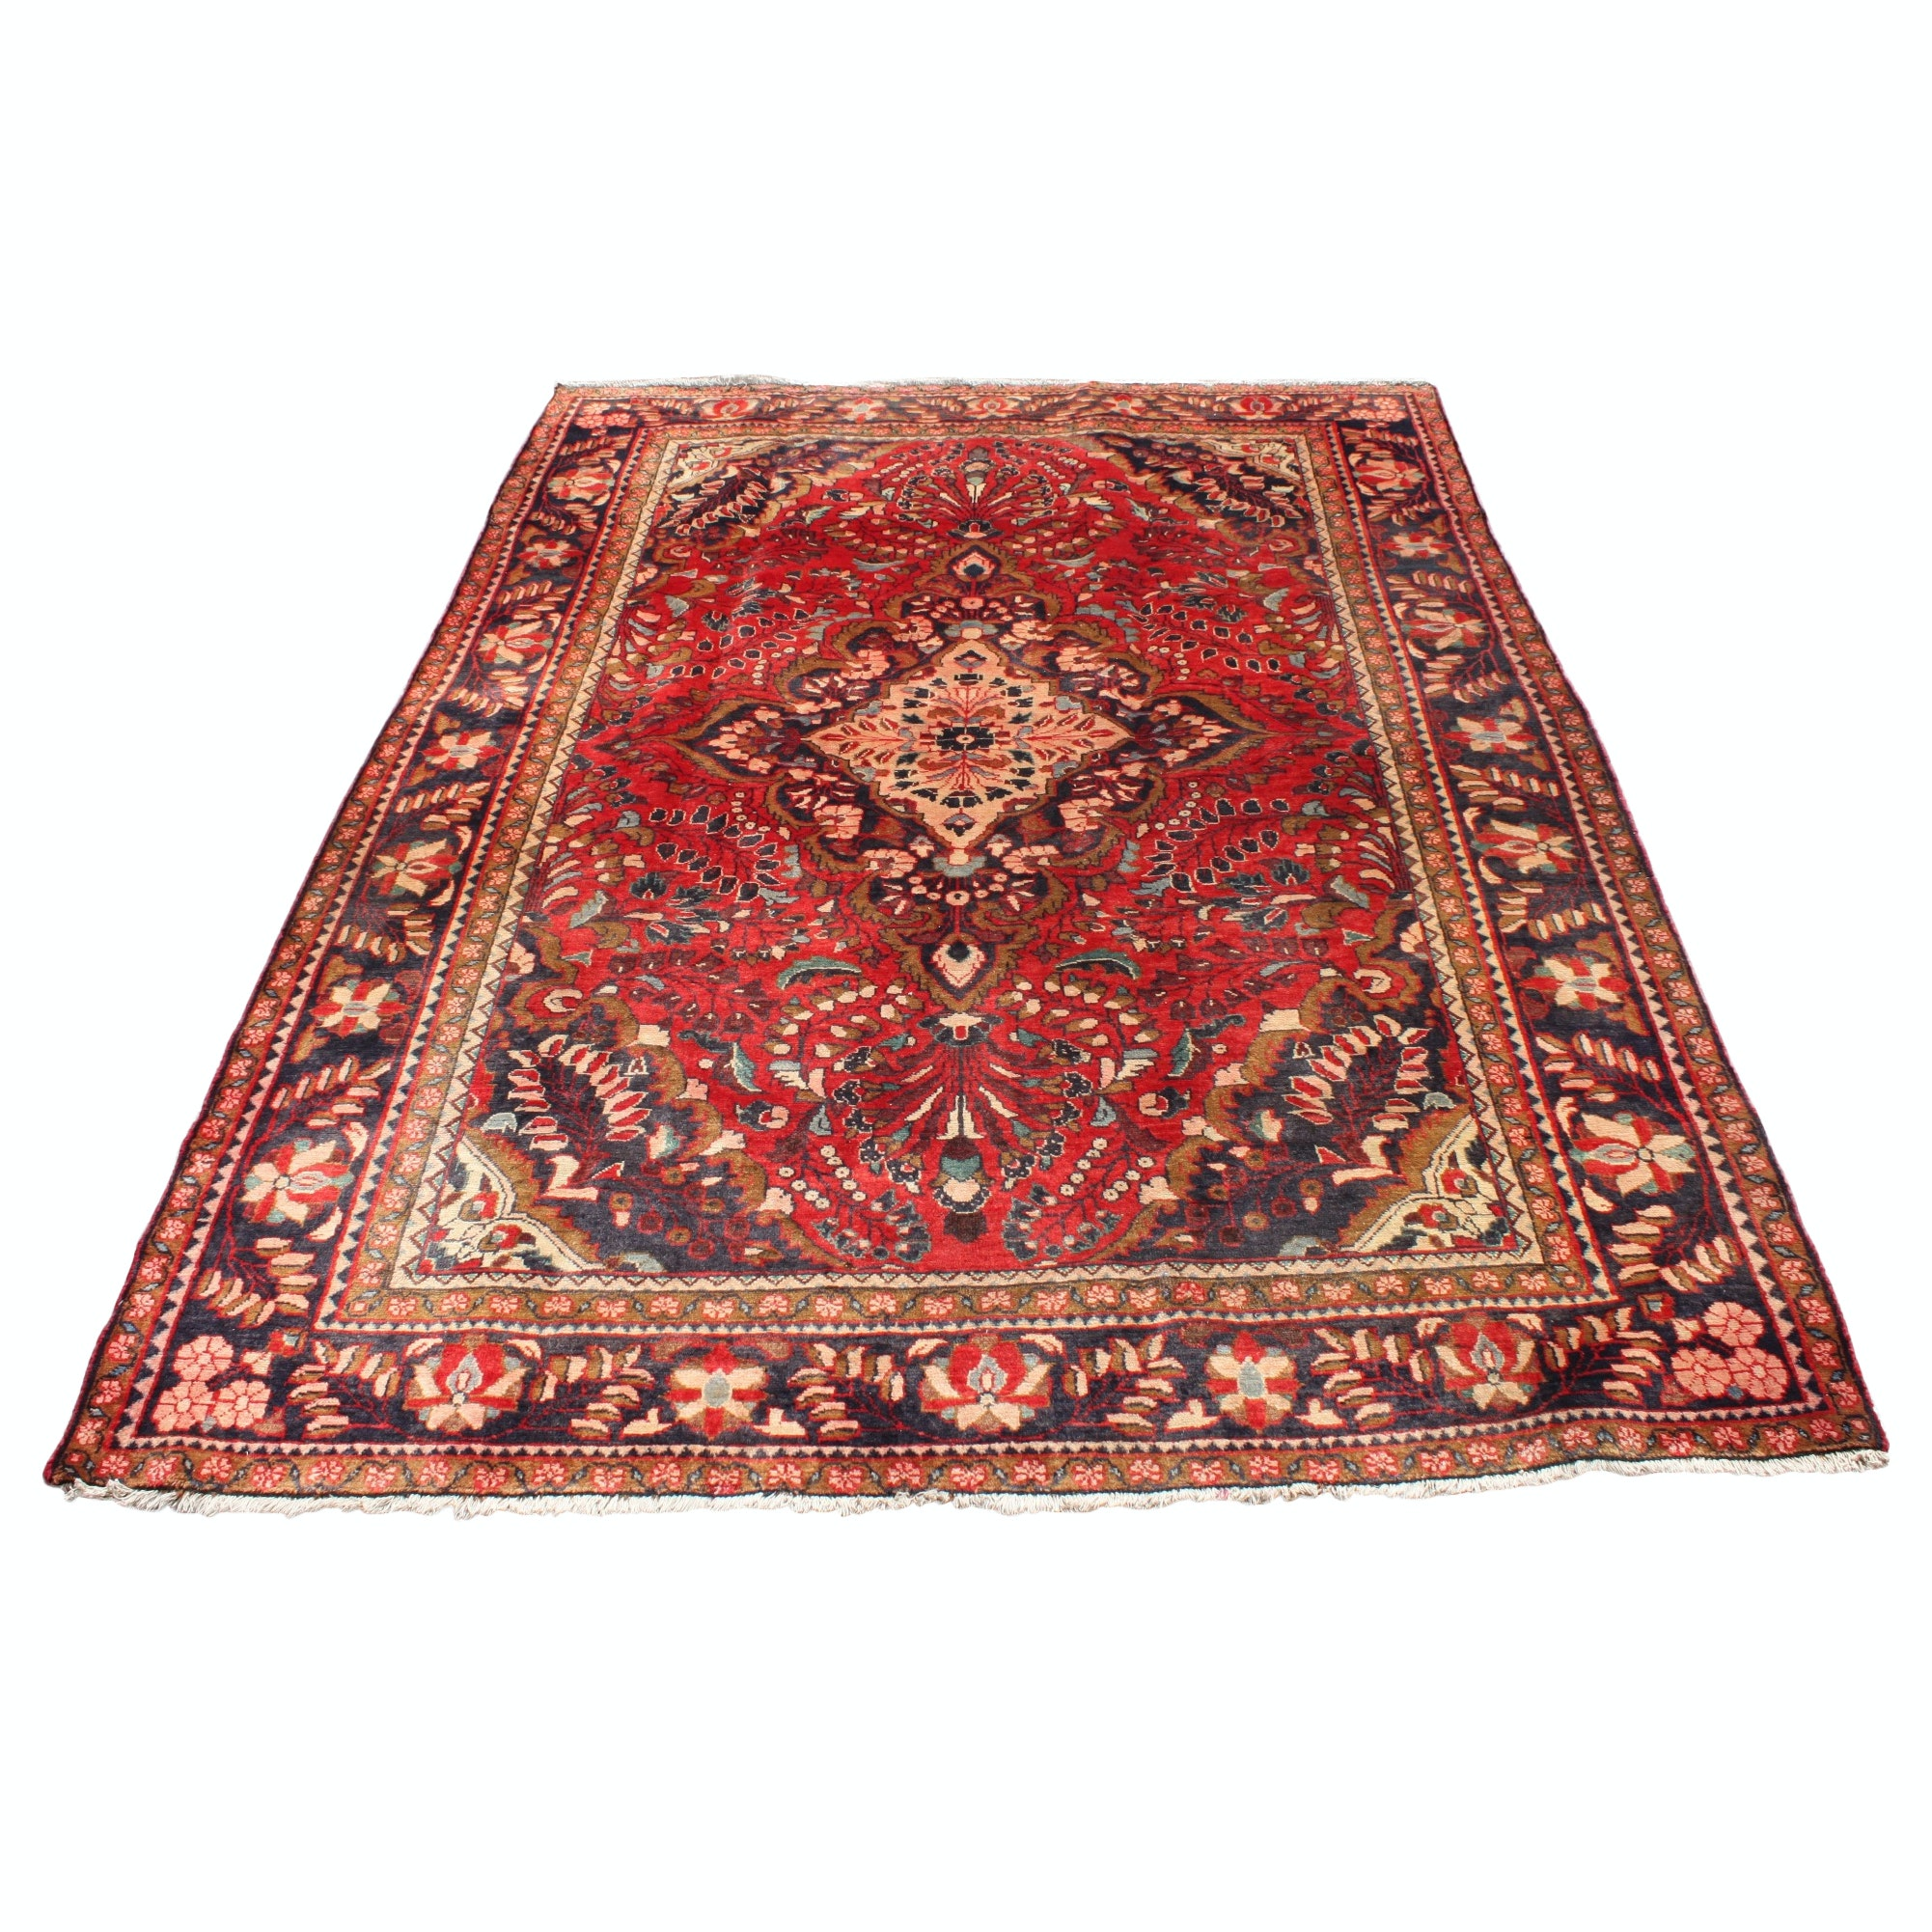 Vintage Hand-Knotted Persian Mohajeran Wool Area Rug